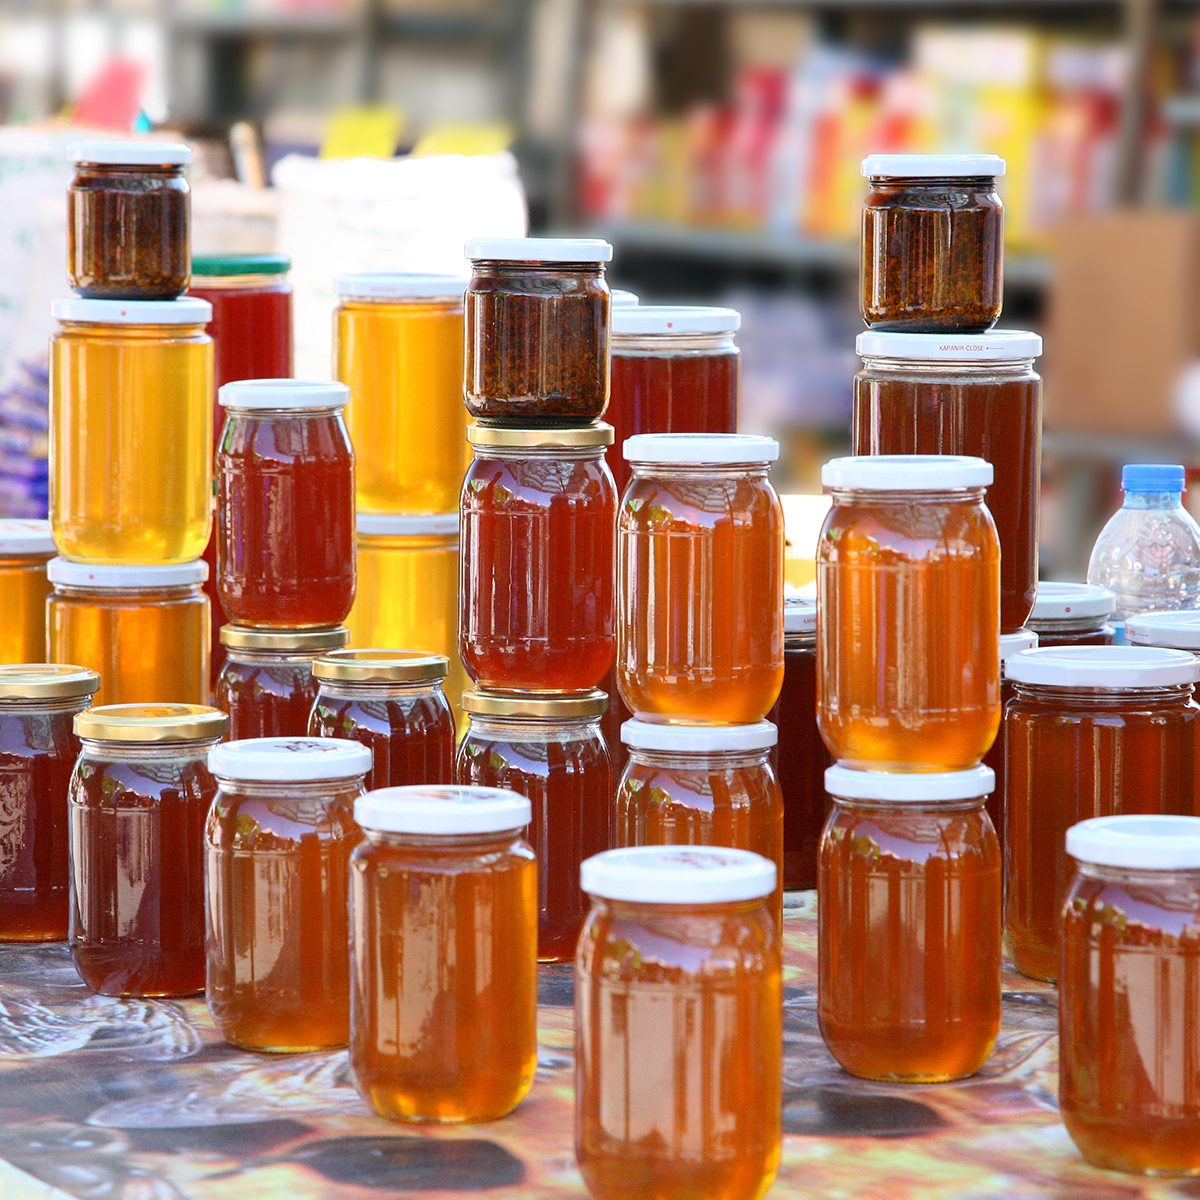 Jars of honey on display for sale.